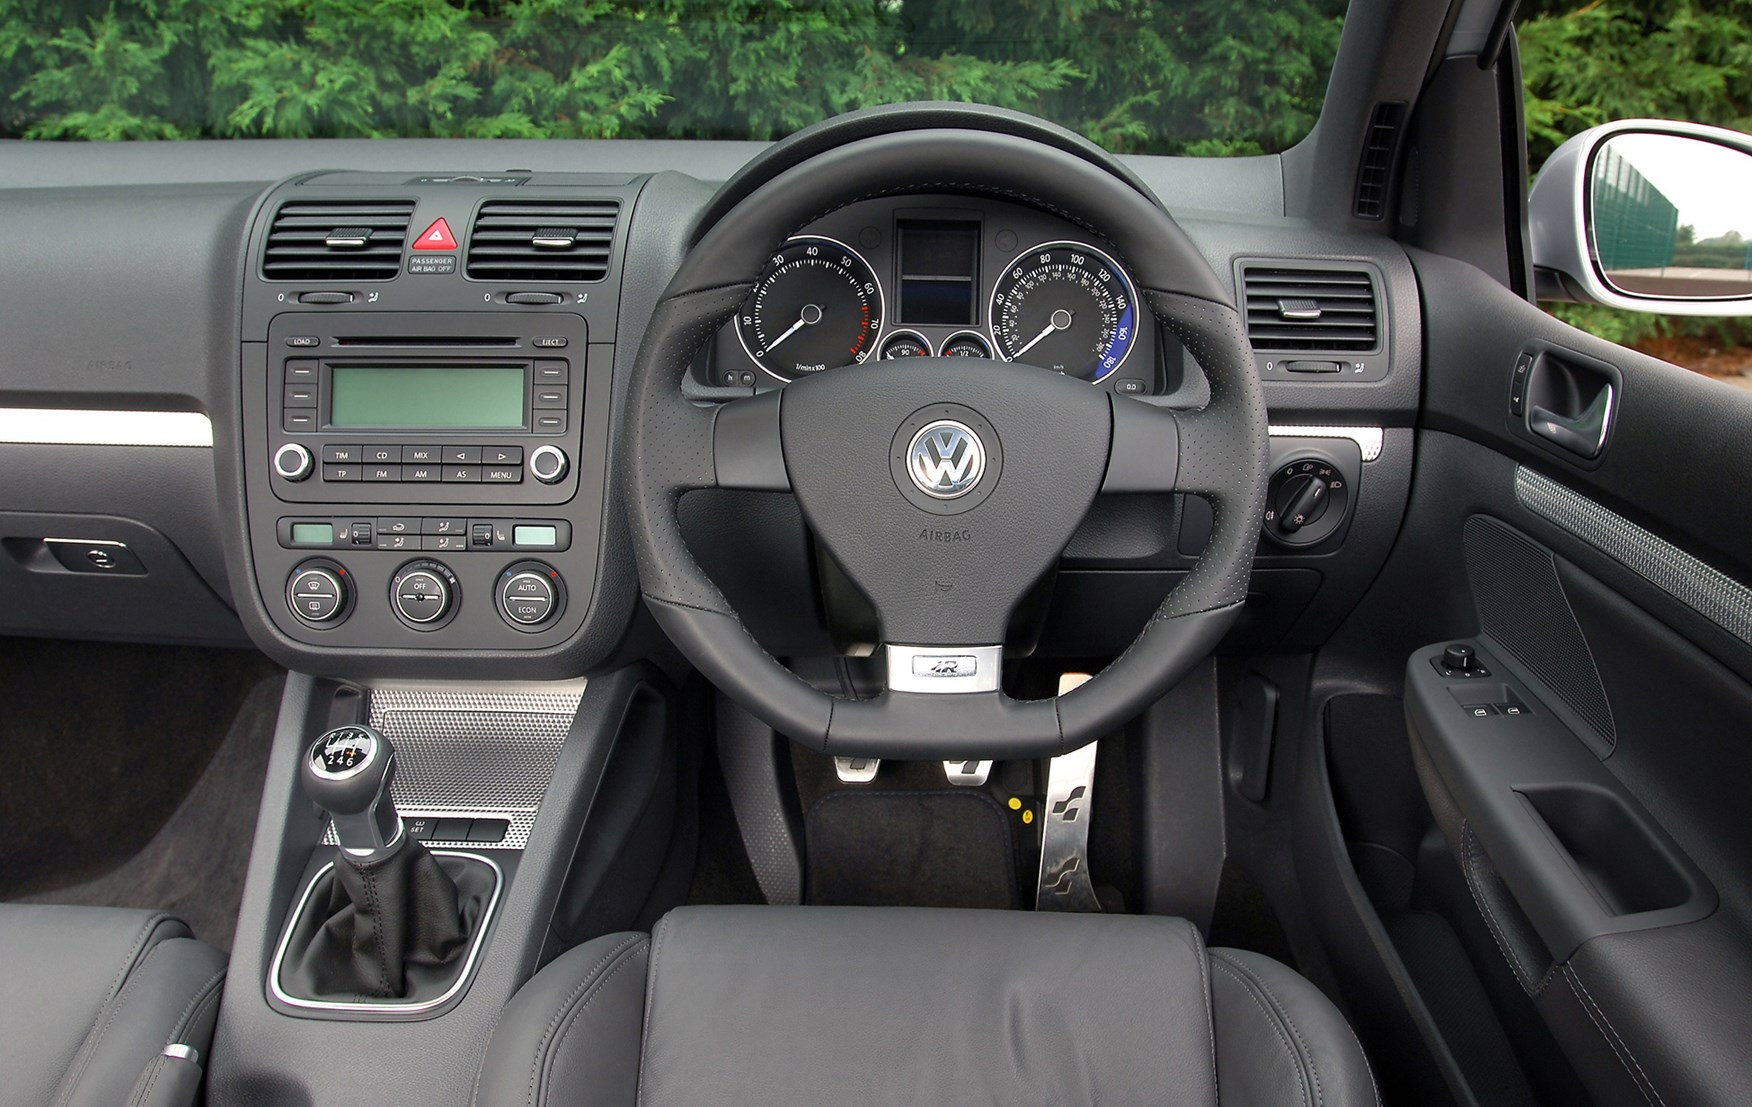 volkswagen golf r32 review 2005 2008 parkers. Black Bedroom Furniture Sets. Home Design Ideas